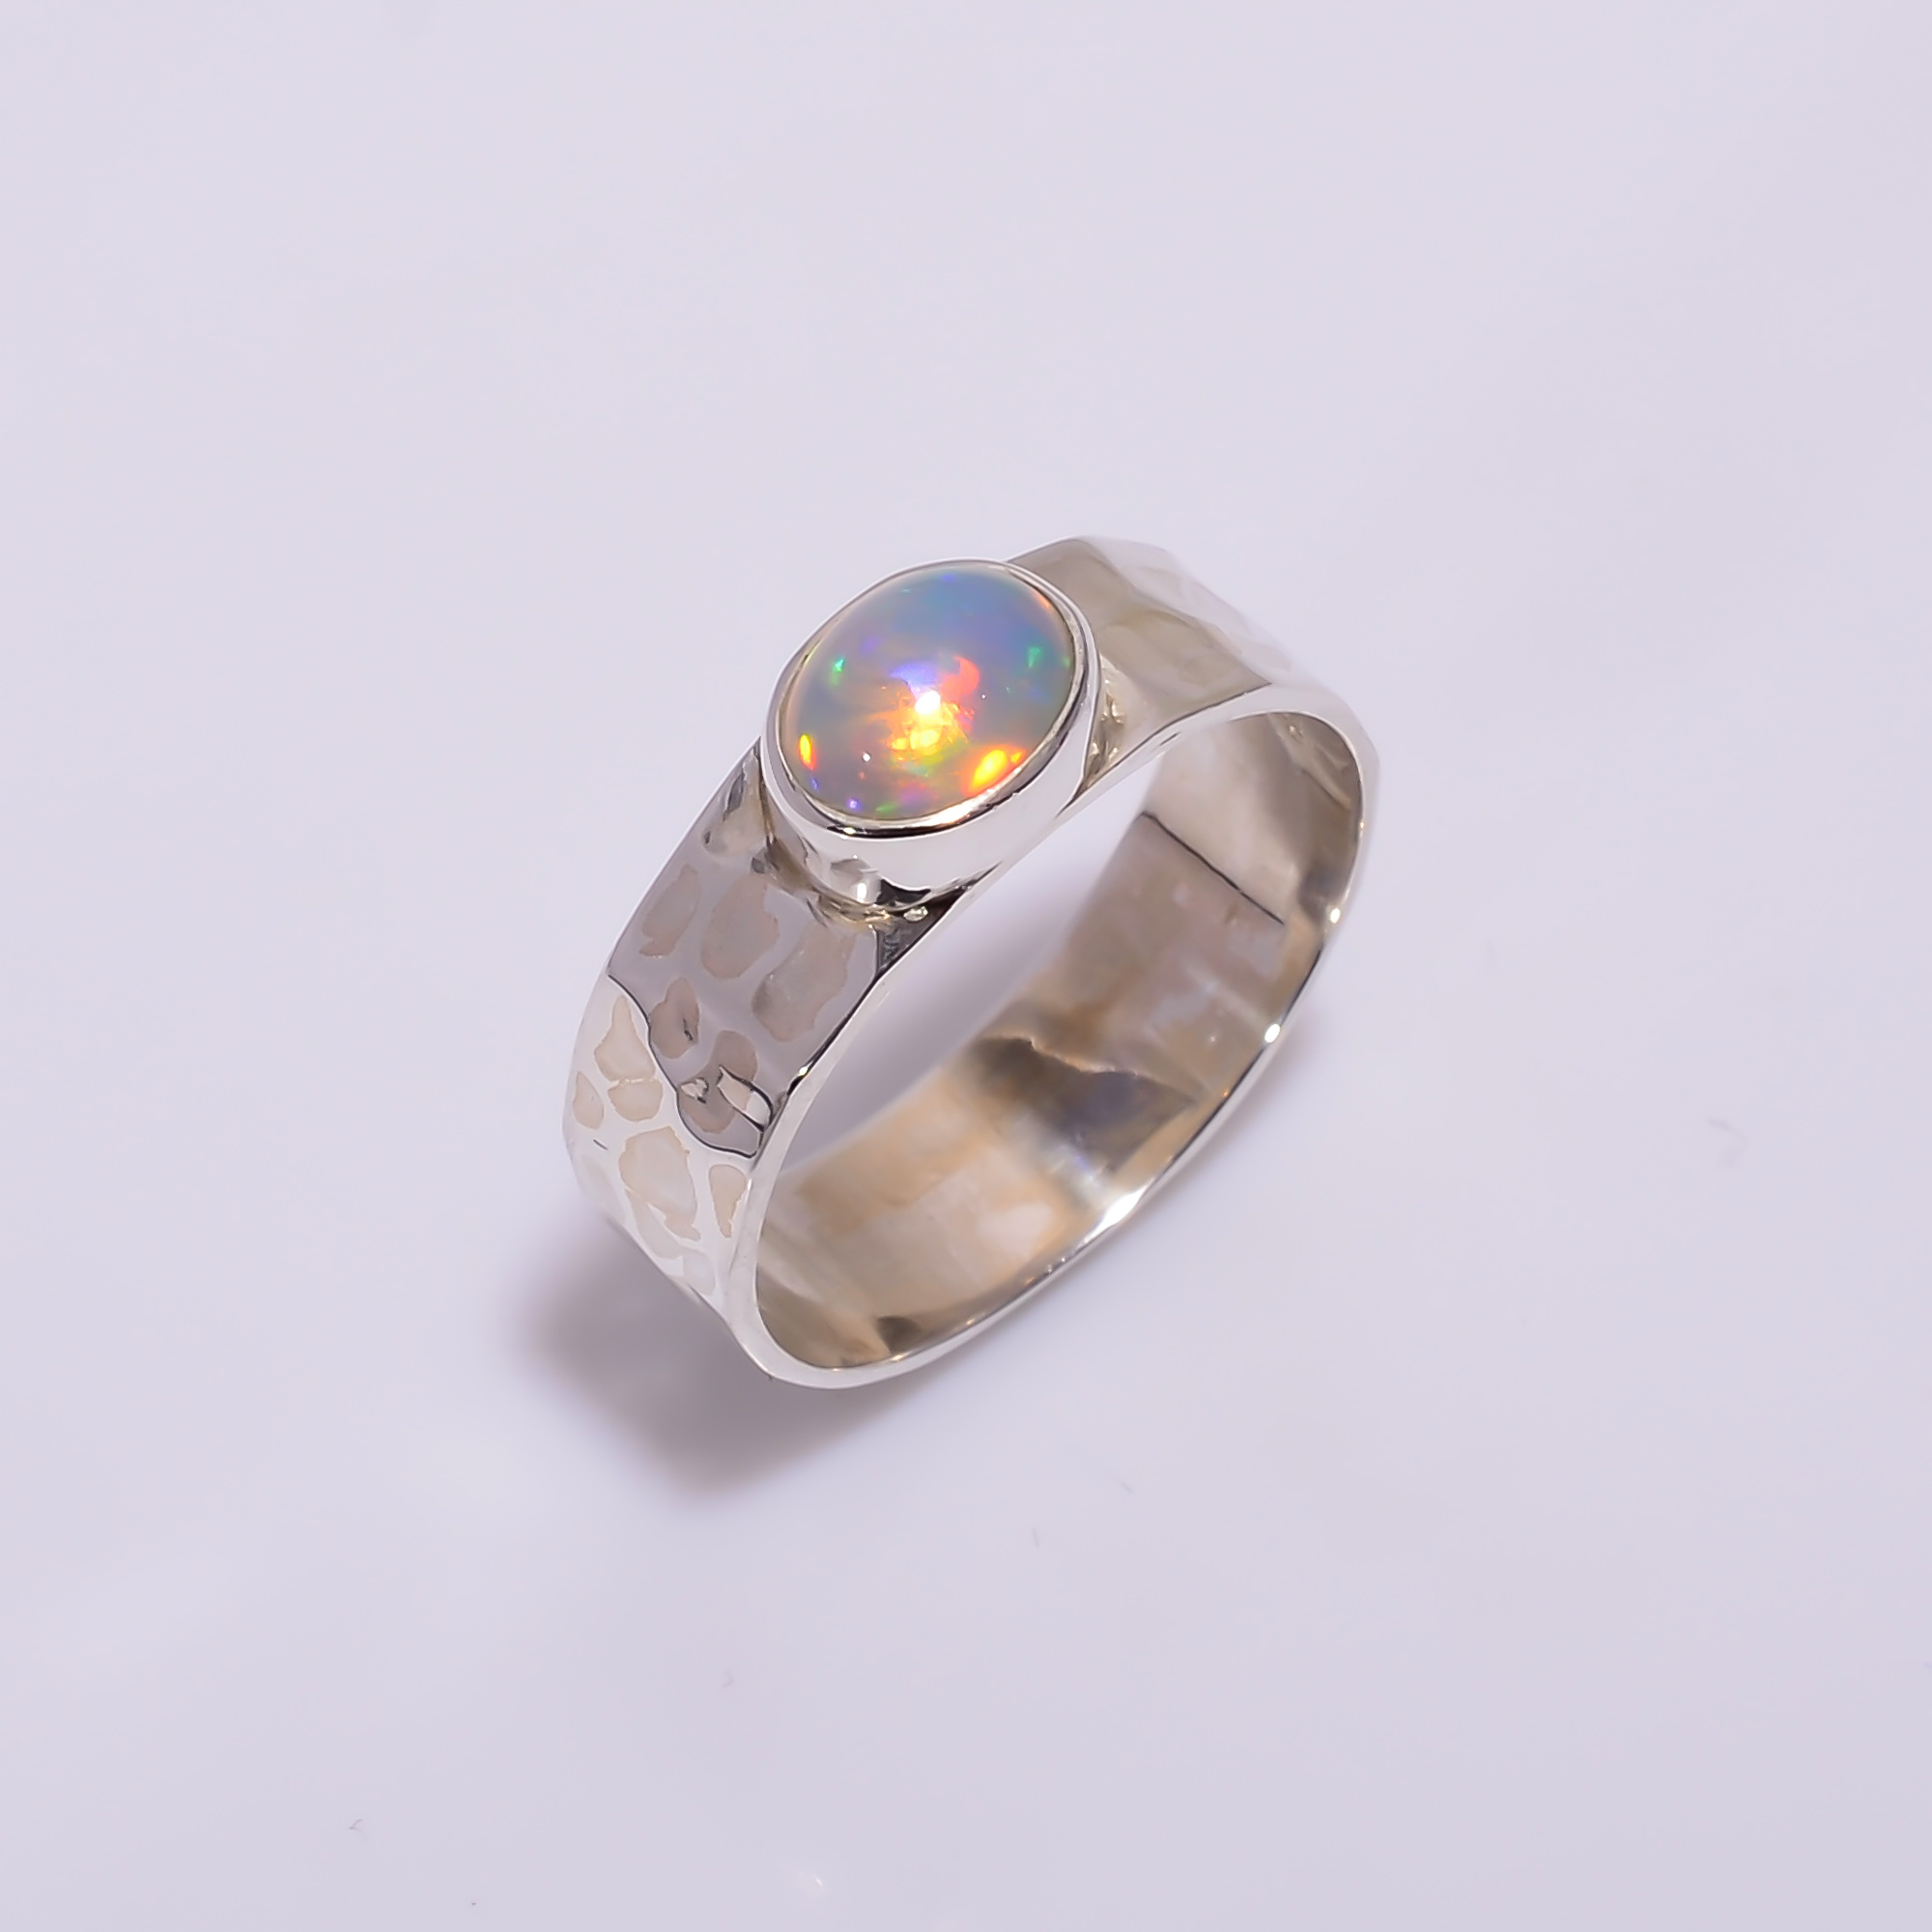 Ethiopian Opal Gemstone 925 Sterling Silver Hammered Ring Size US 7.5